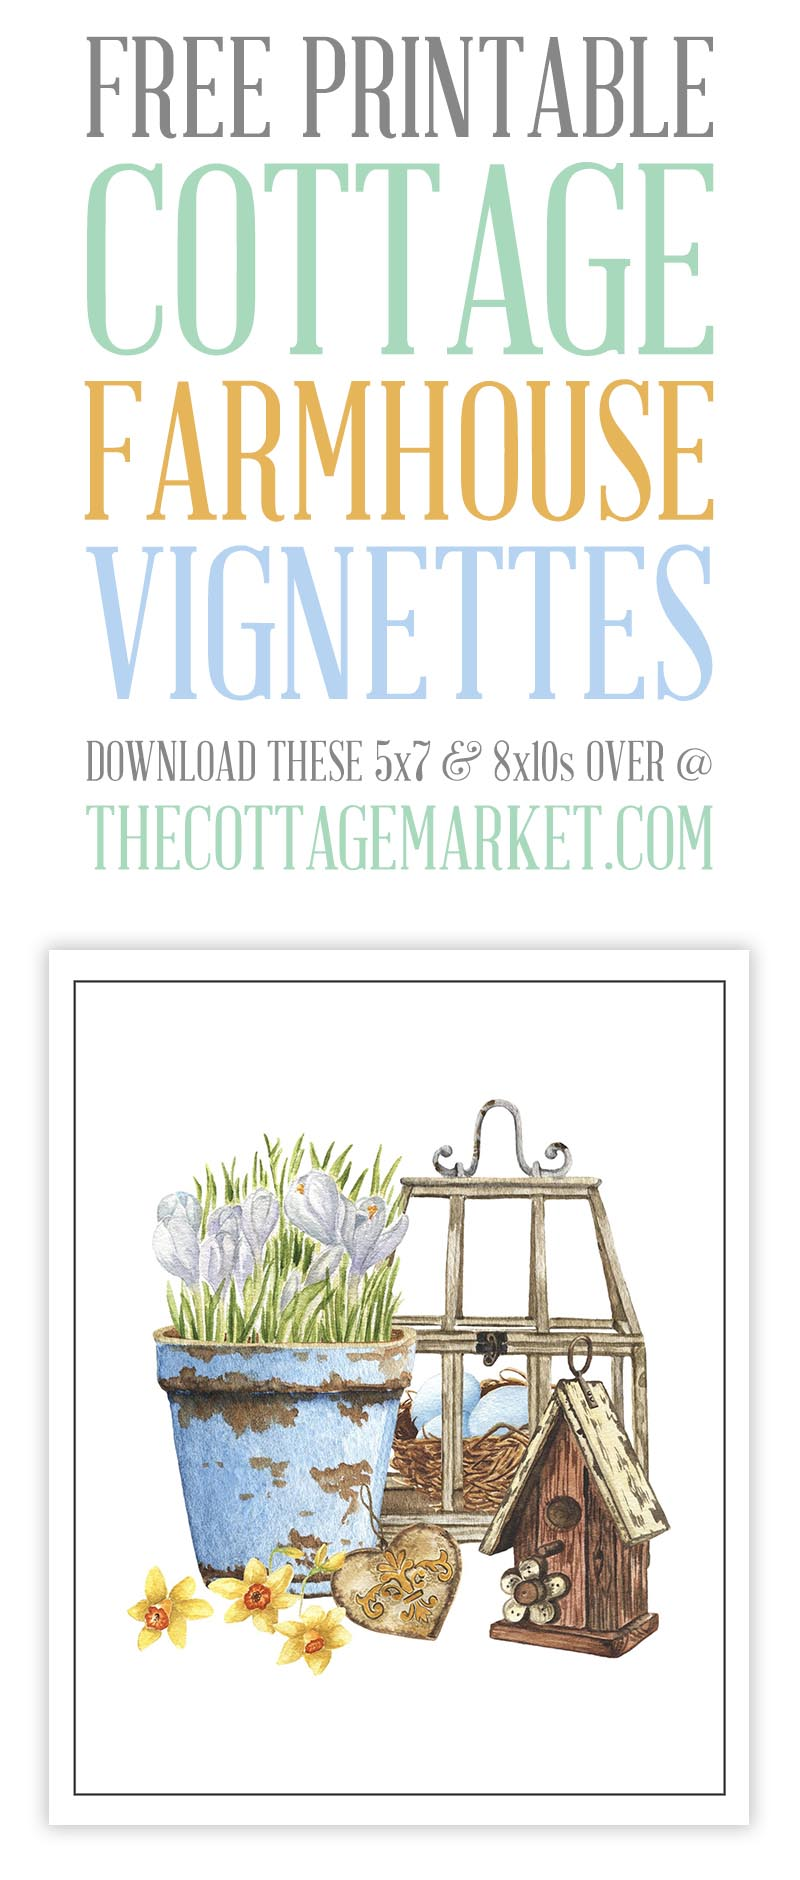 These Free Printable Cottage Farmhouse Vignettes are going to look amazing in your home. A perfect little touch for the walls, gallery wall, vignettes and more.